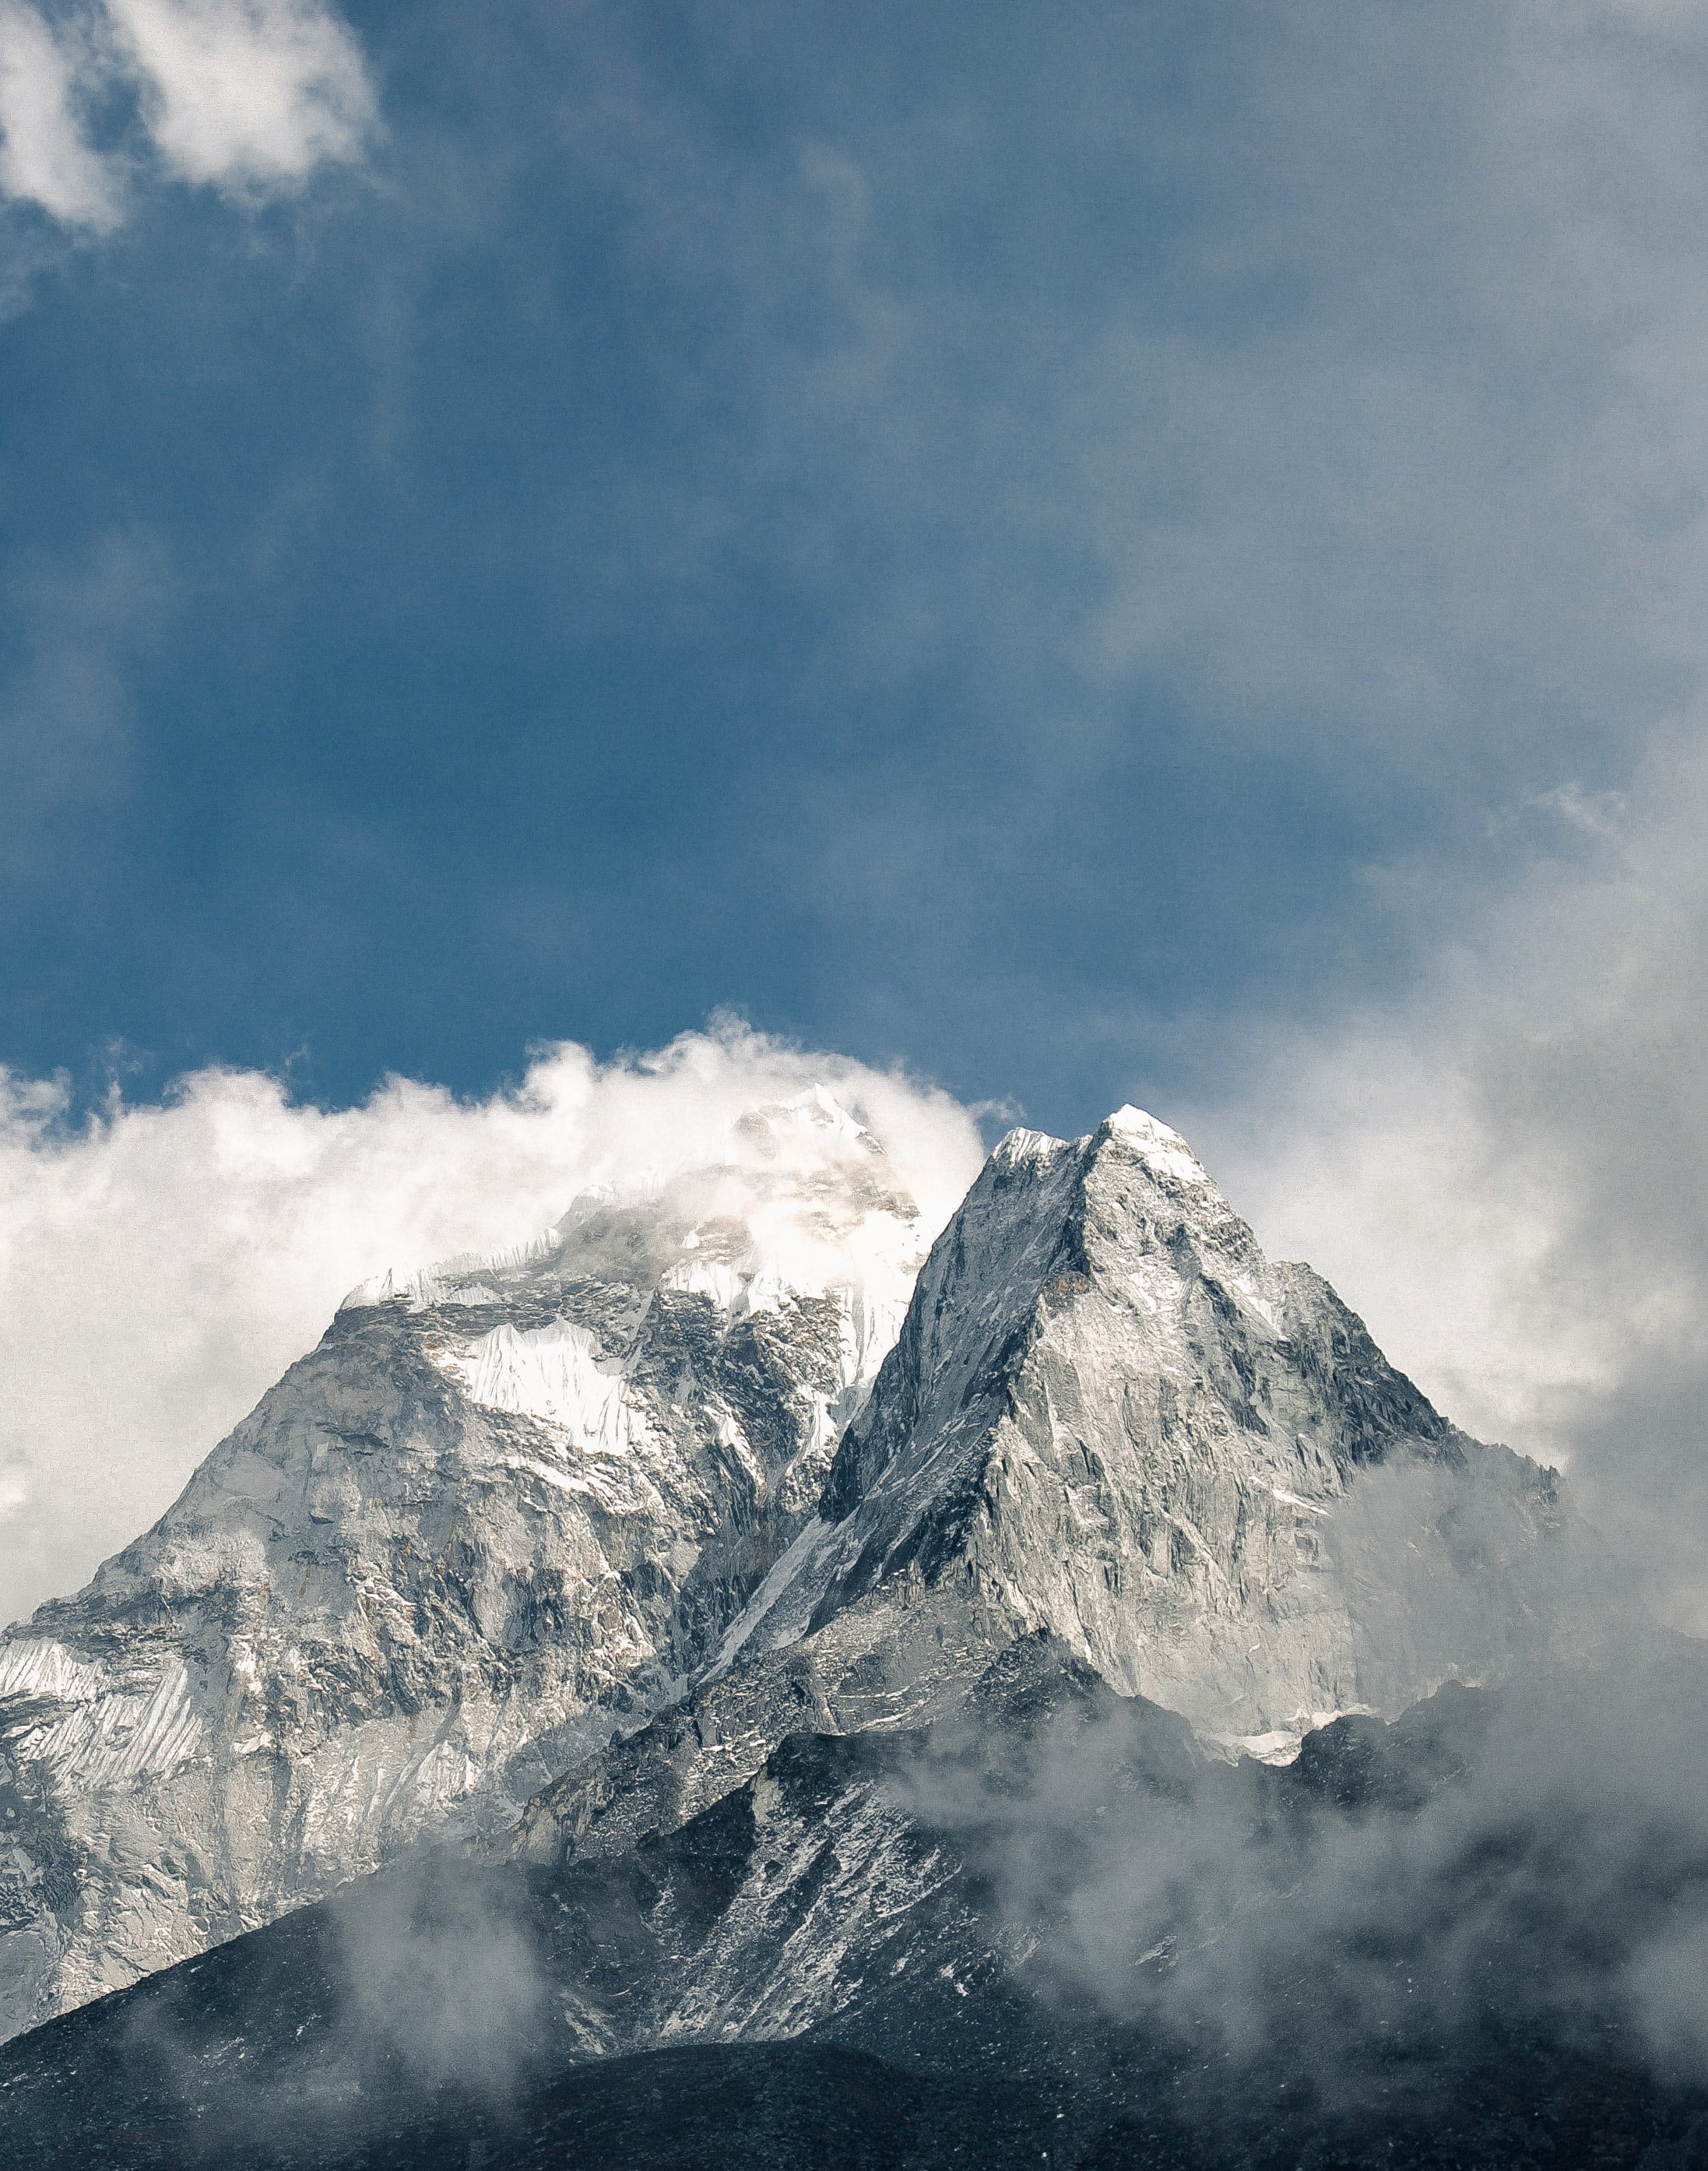 snowy mountain covered by clouds